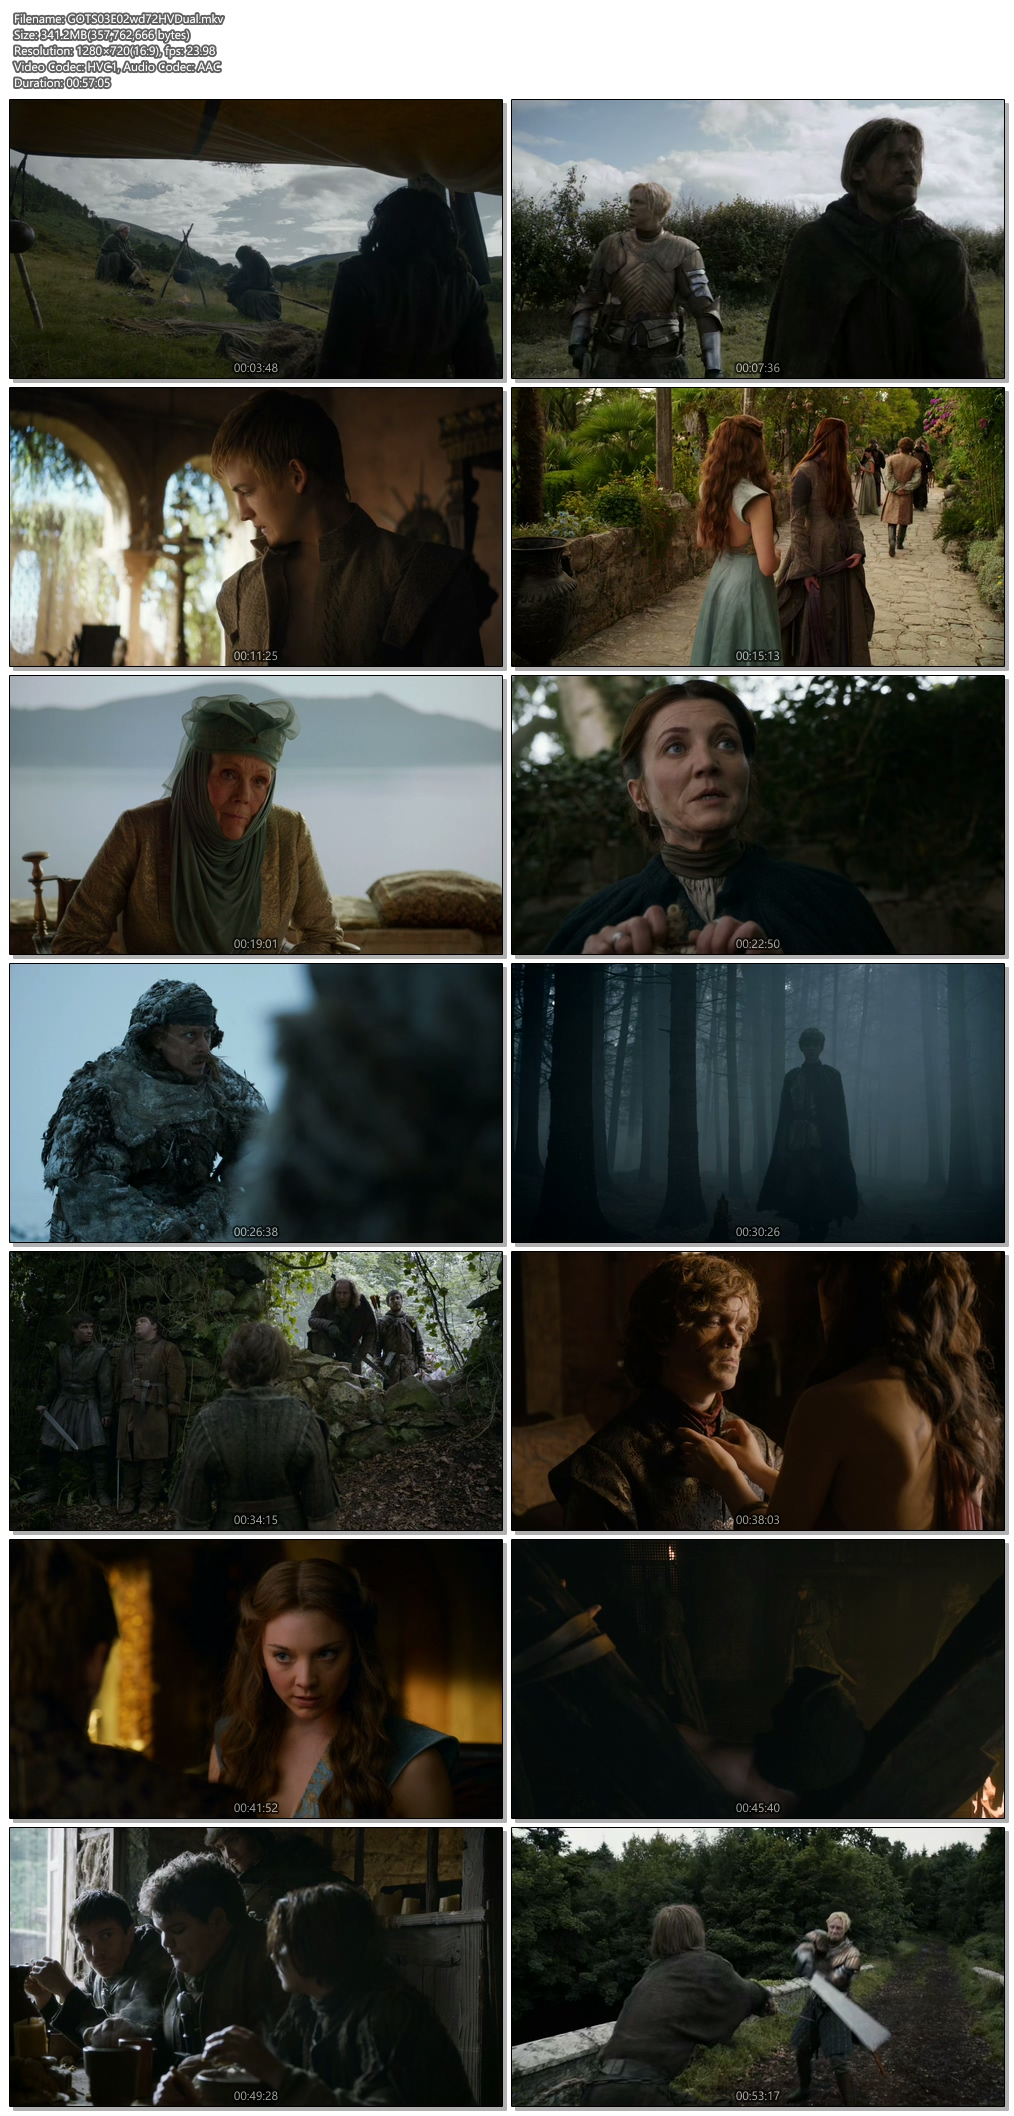 GOTS03E02wd72HVDual Watch Online Game of Thrones 2013 Full Season 03 Episode 02 in Hindi Download